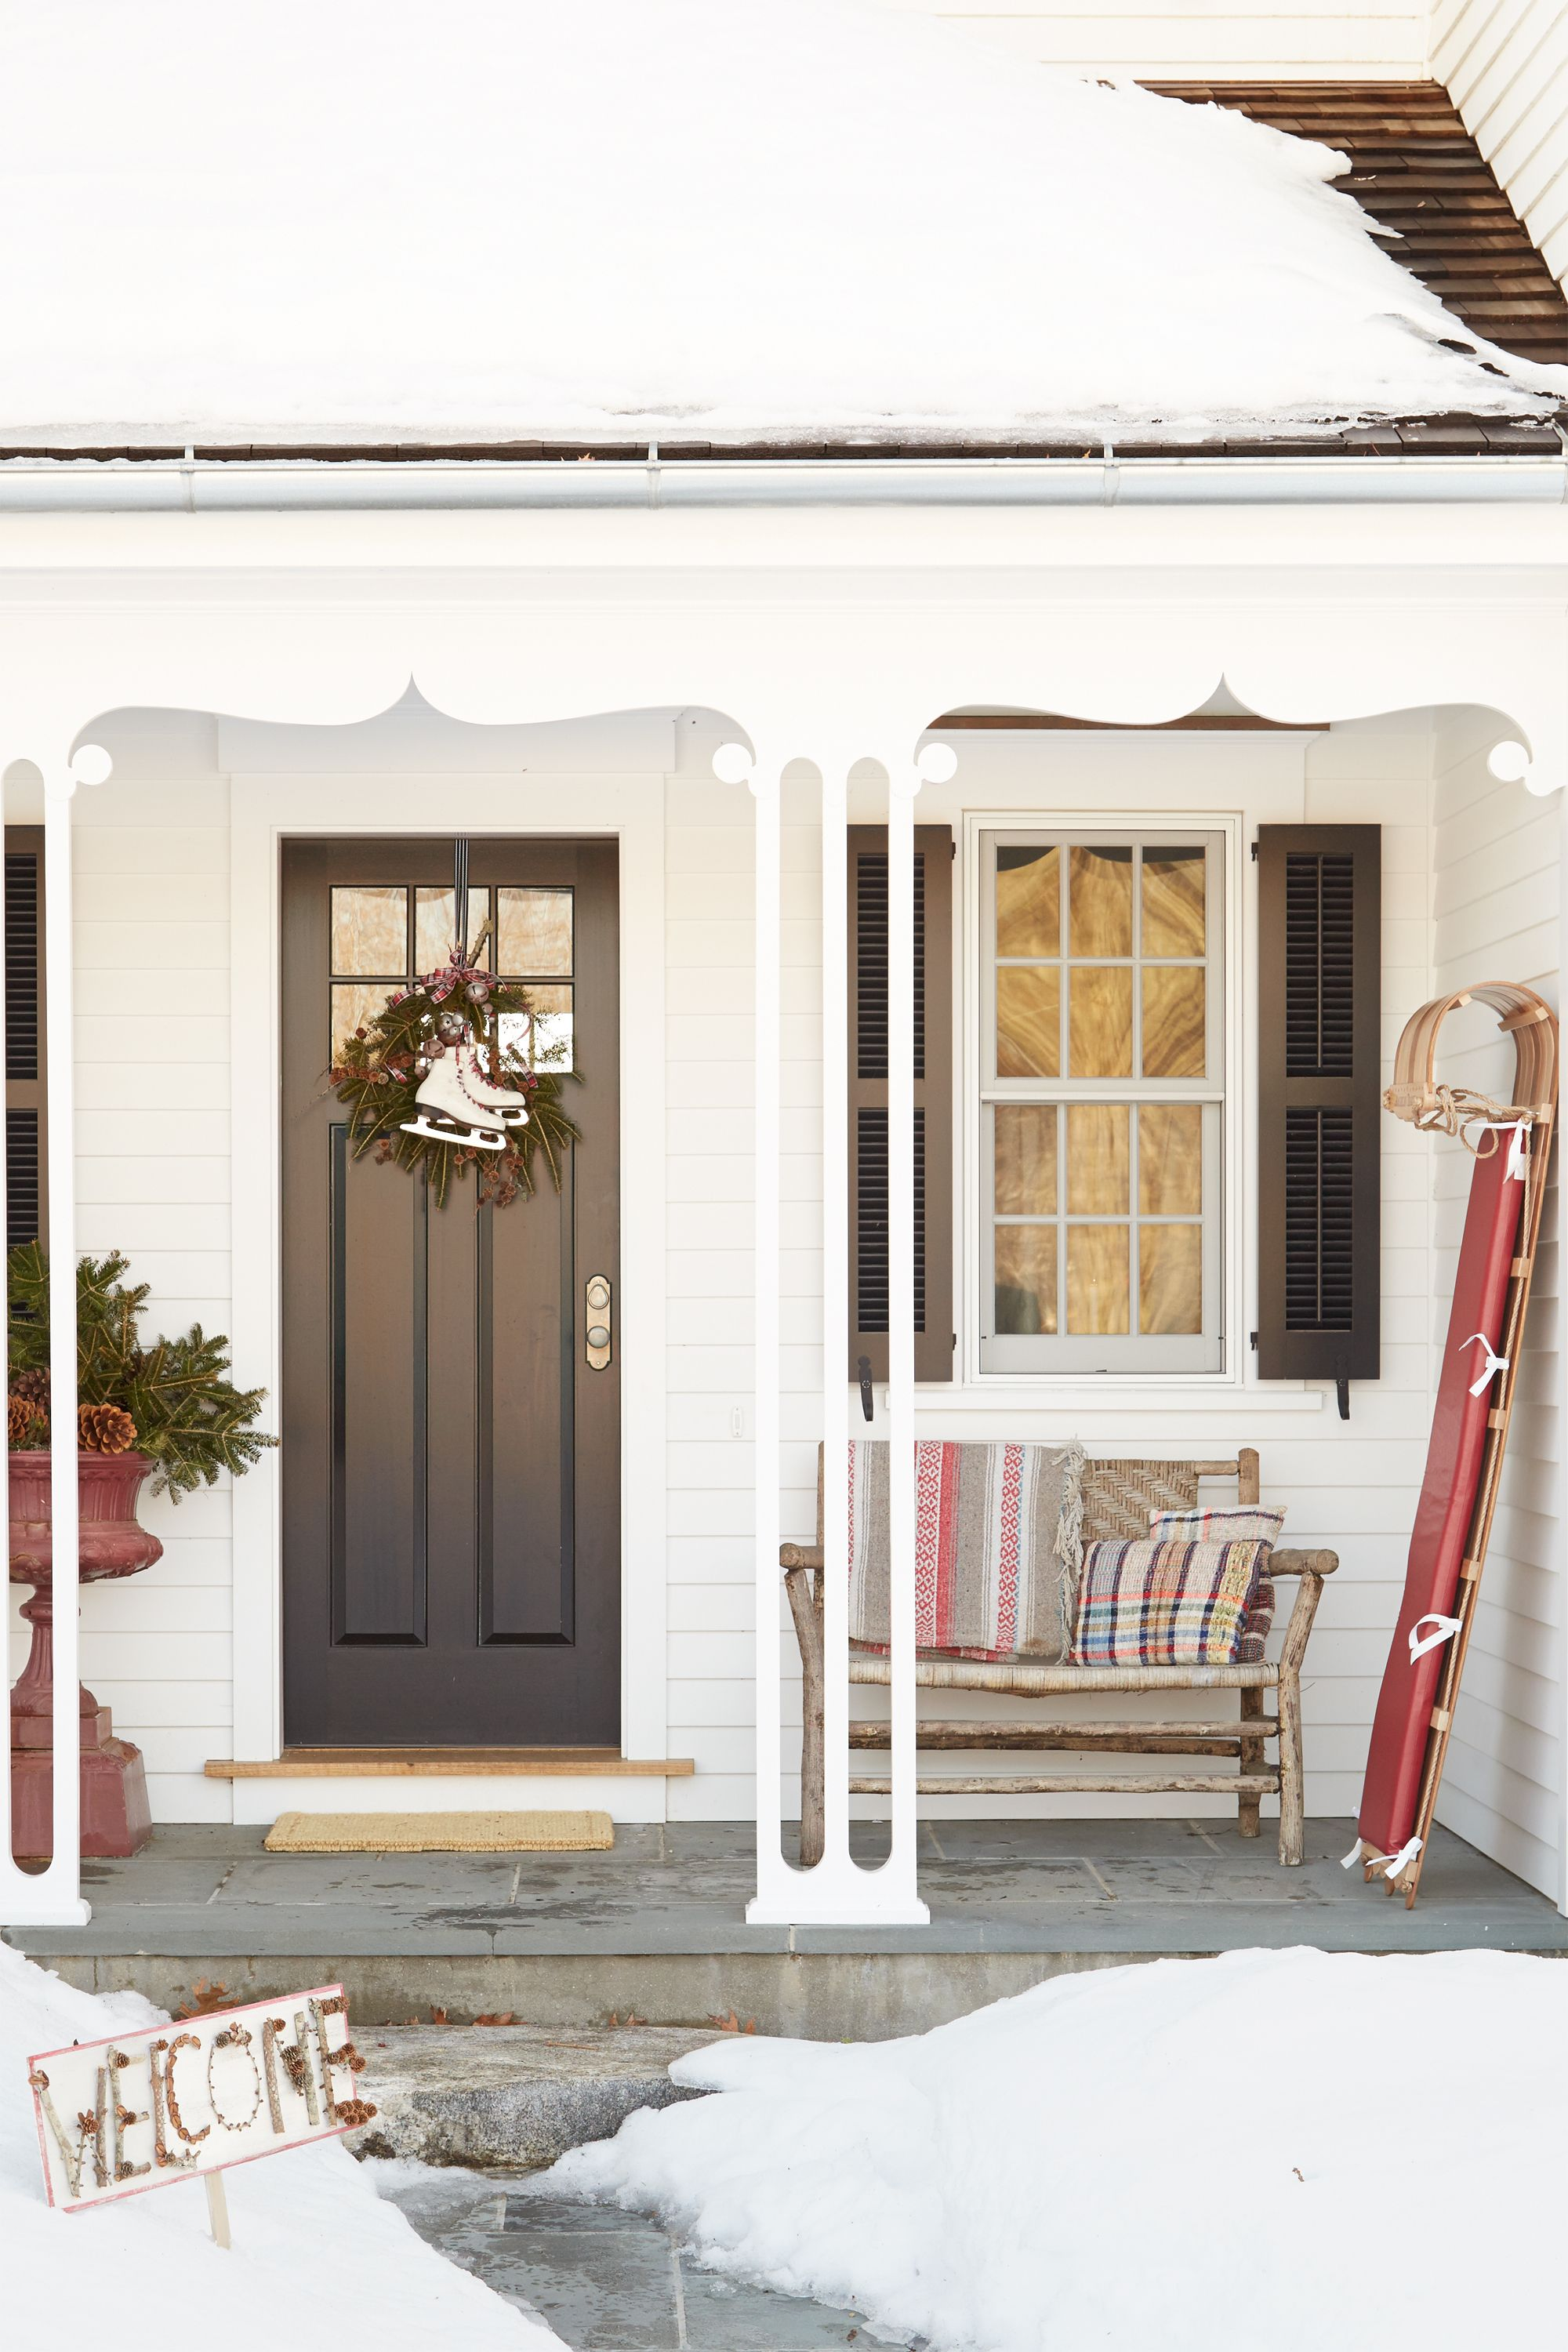 Peek Inside 30 Homes, All Decked Out for Christmas | Christmas decor ...